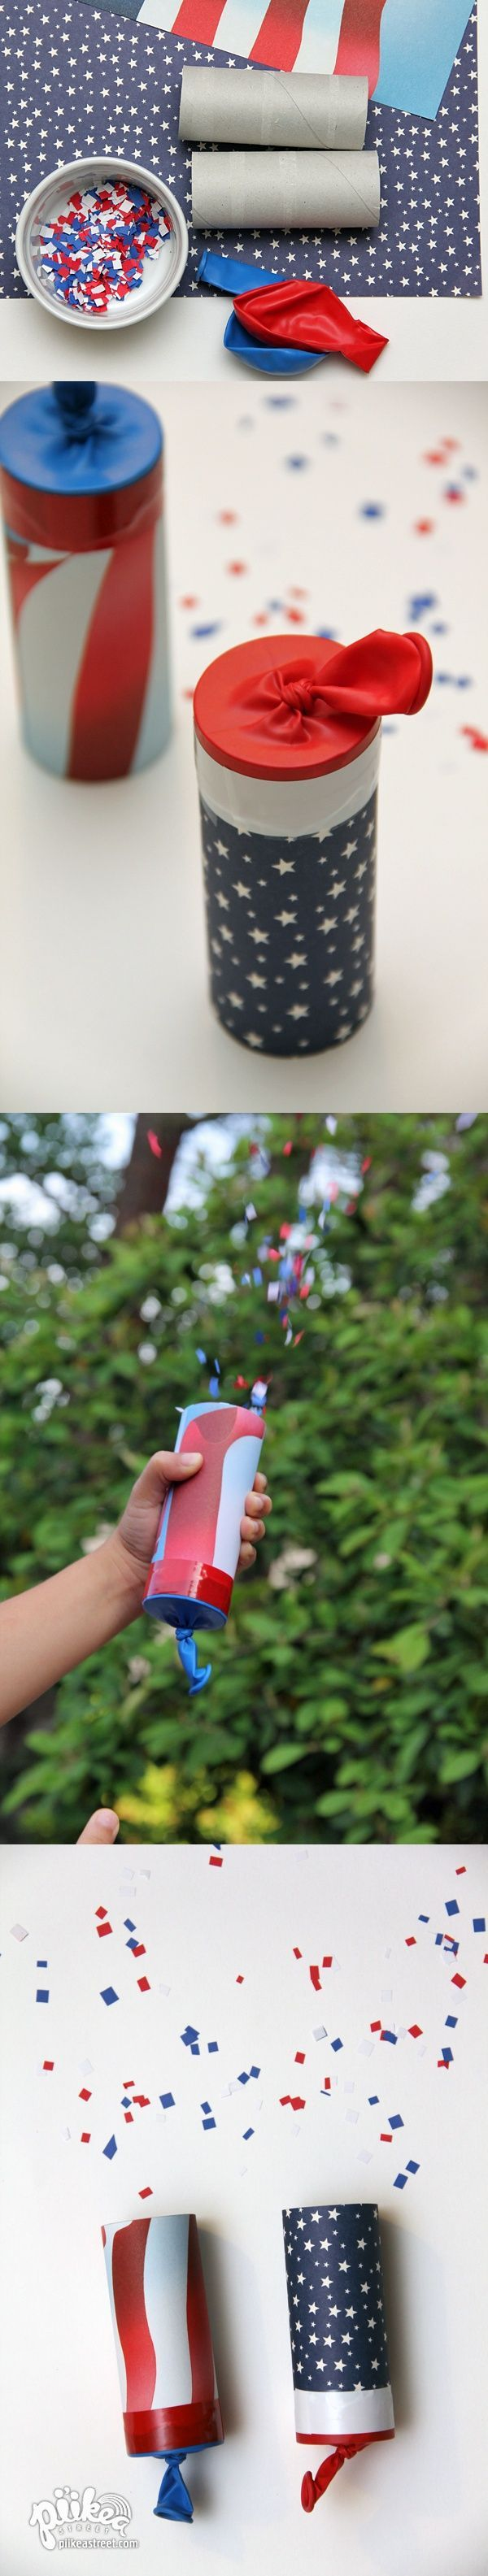 Make a few Confetti Launchers for the 4th of July! An Original #kids #craft by http://www.piikeastreet.com #piikeastreet